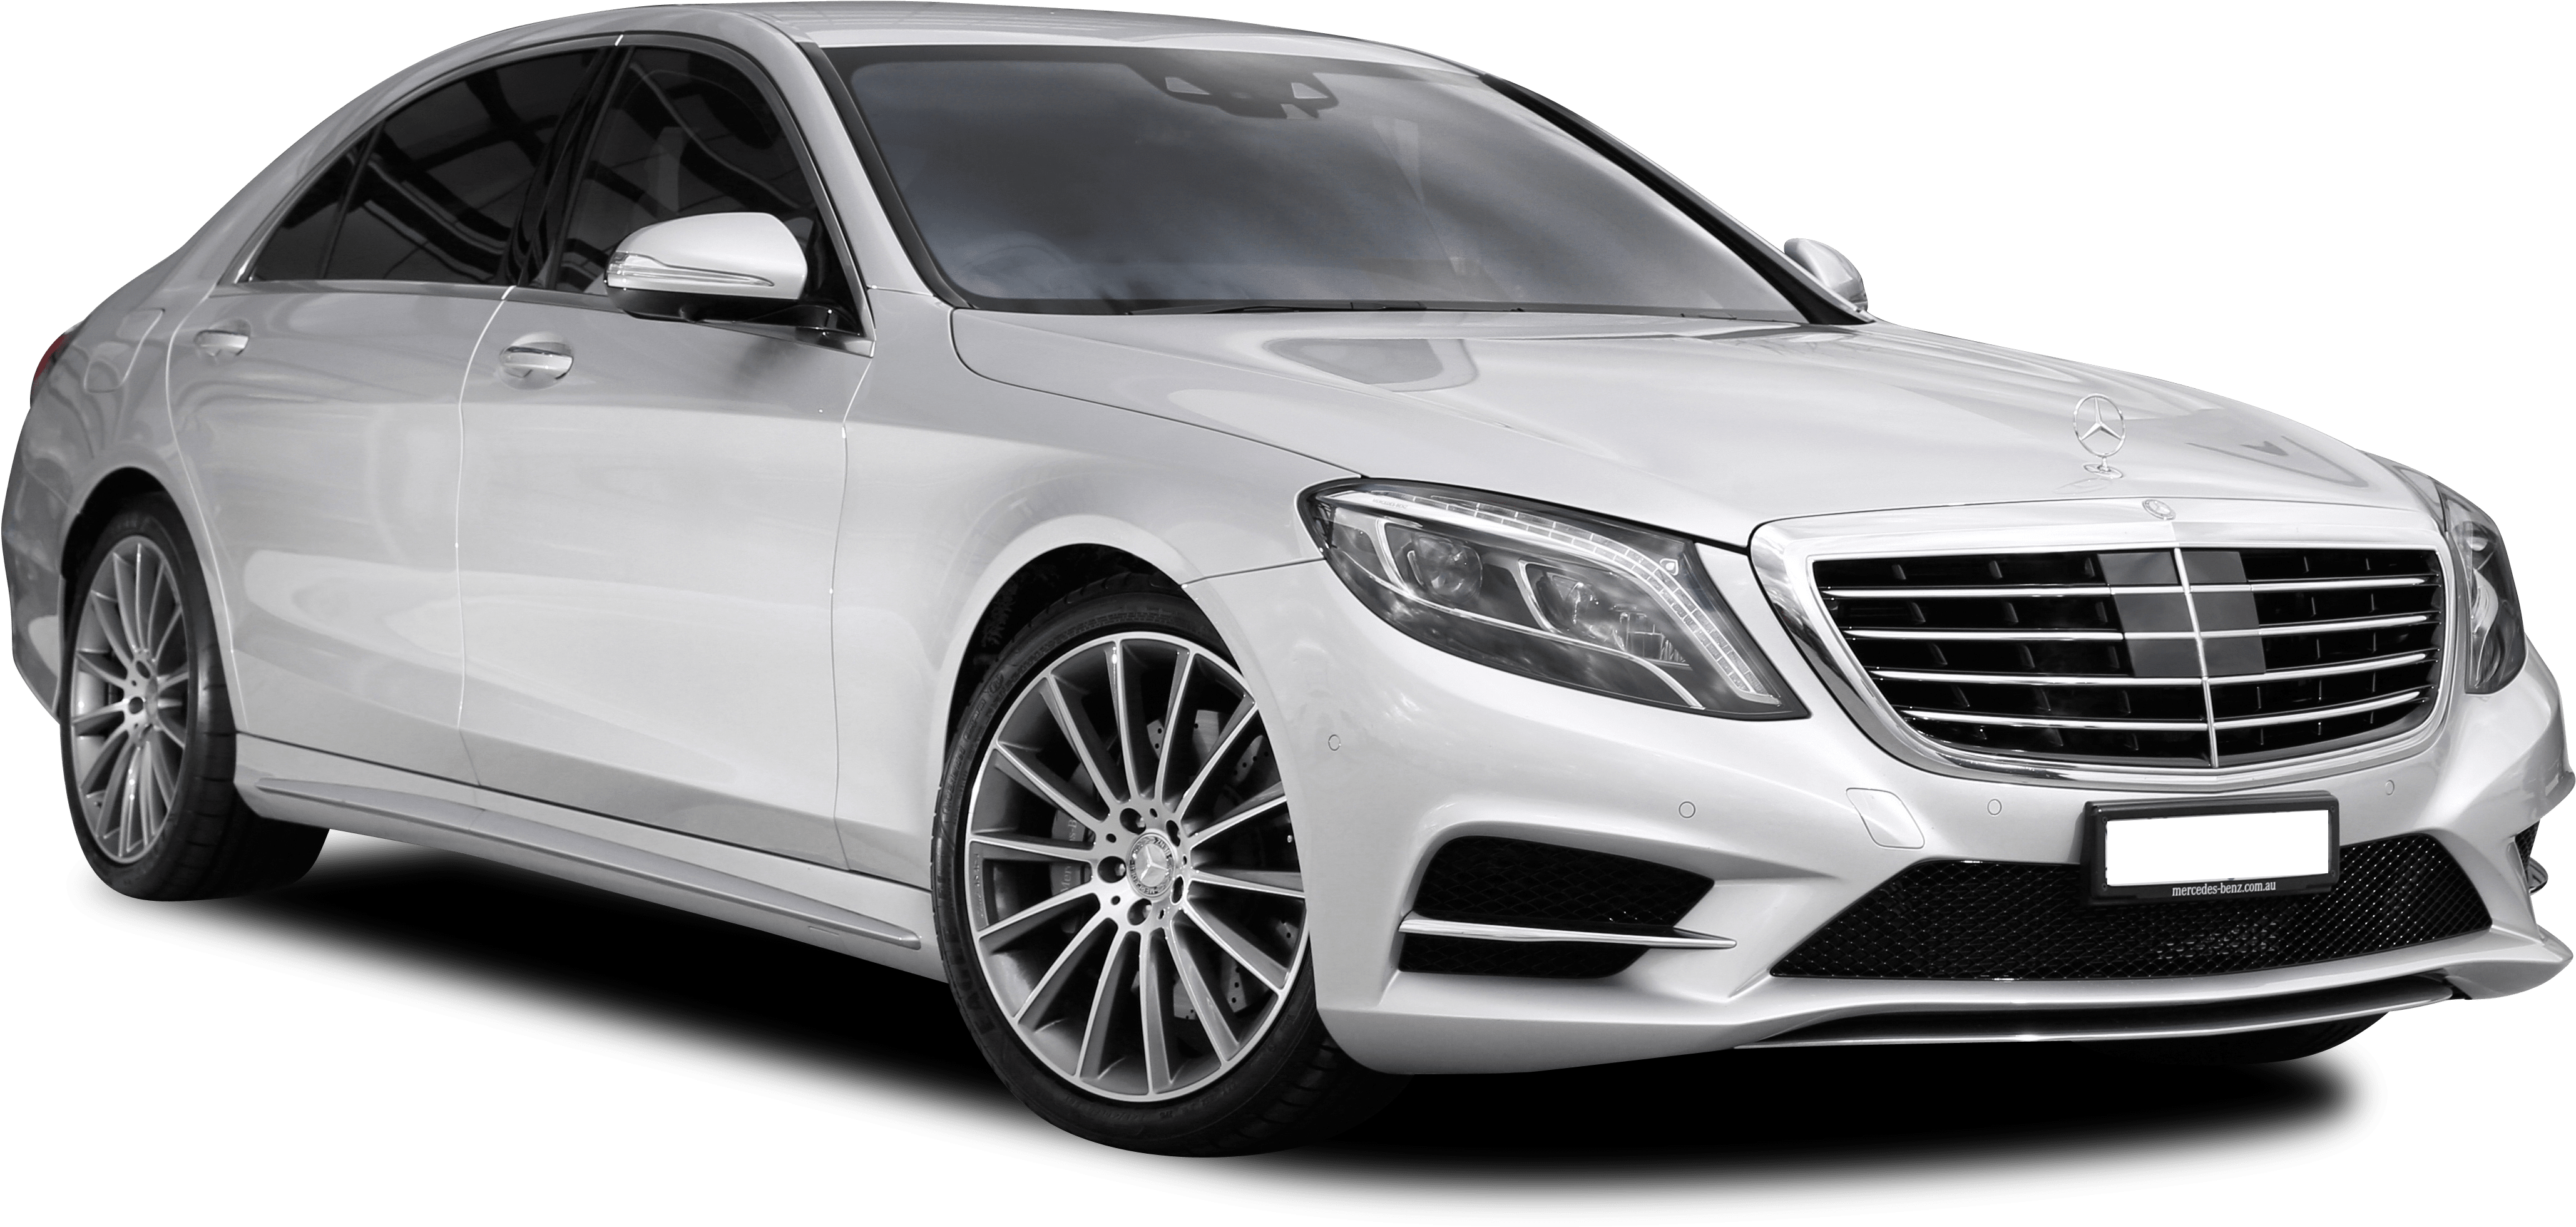 Mercedes PNG images, car pictures.